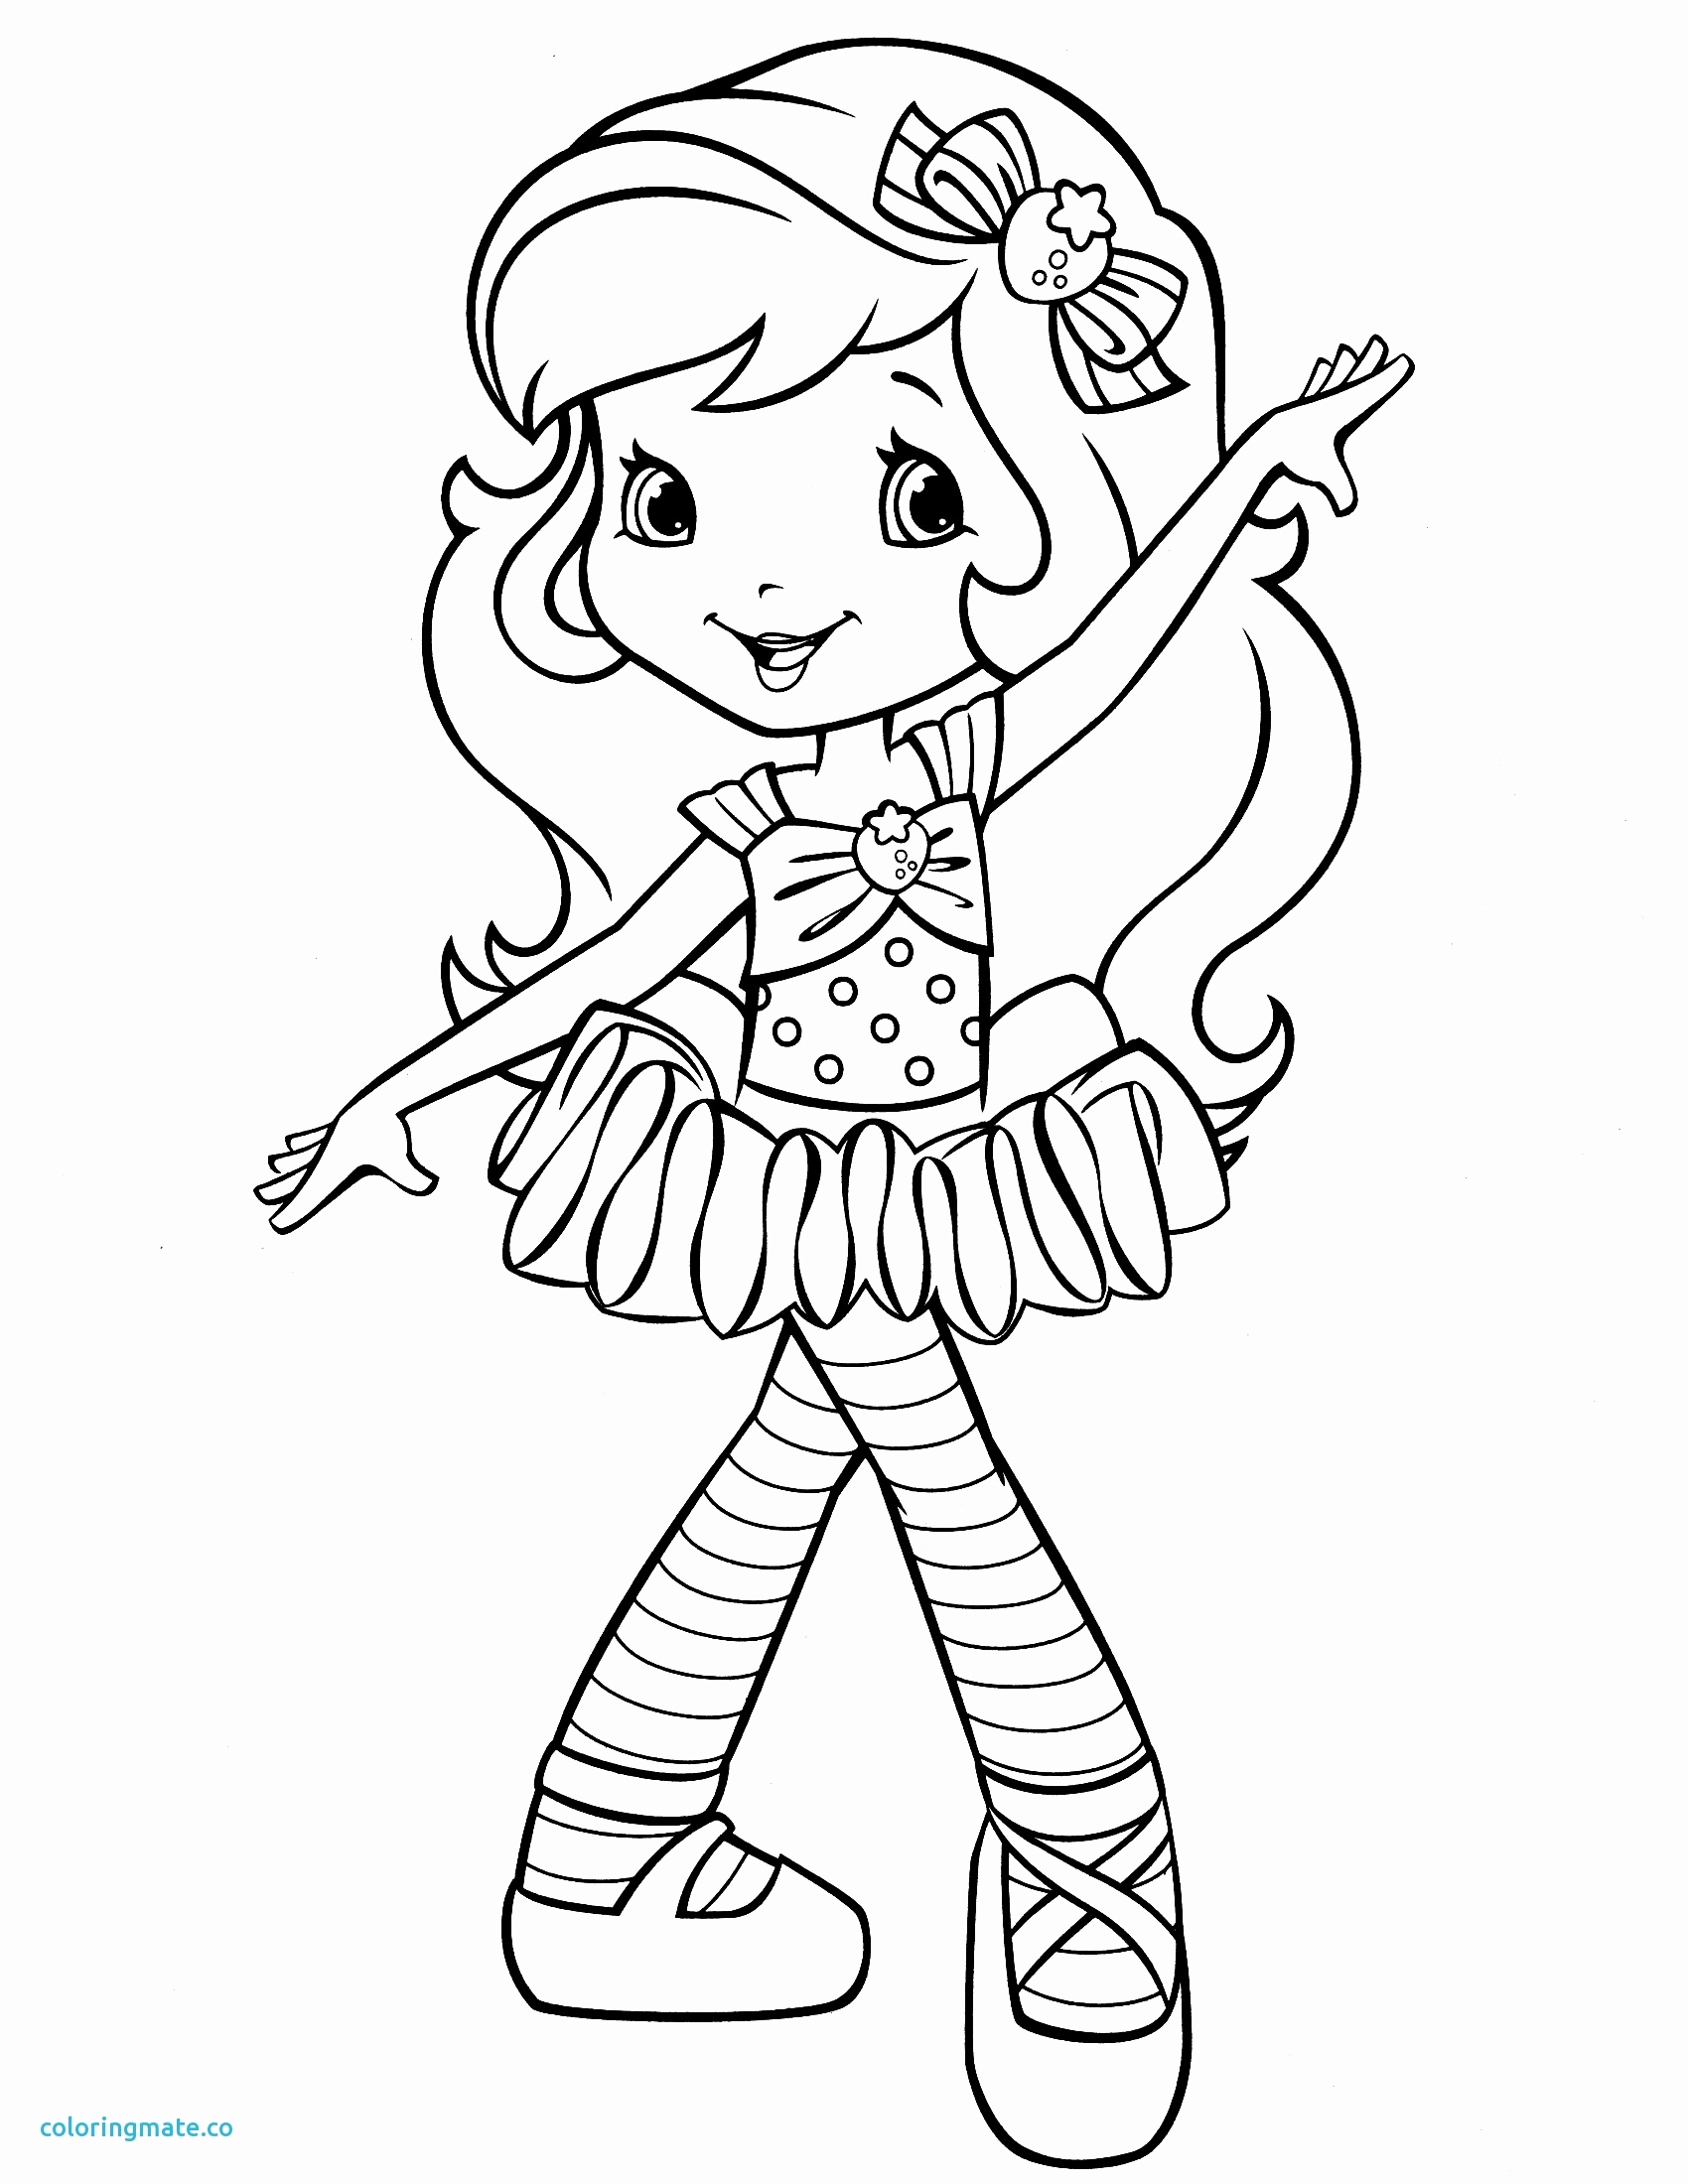 strawberry shortcake princess coloring pages princess of strawberryland strawberry shortcake coloring pages coloring princess strawberry shortcake